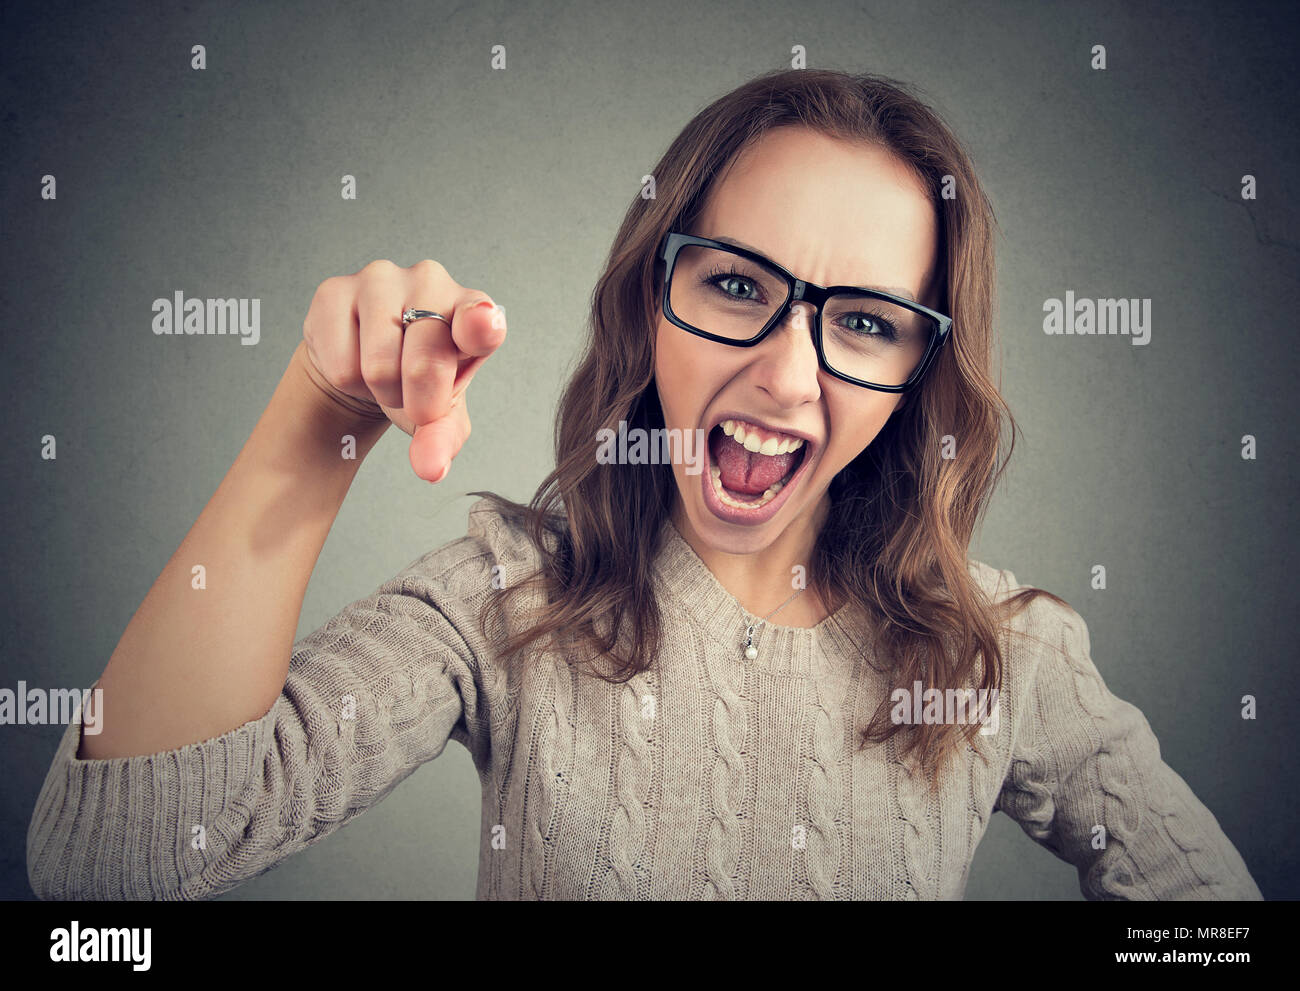 Young girl in glasses pointing at camera and shouting in accusation looking angry on gray background. - Stock Image